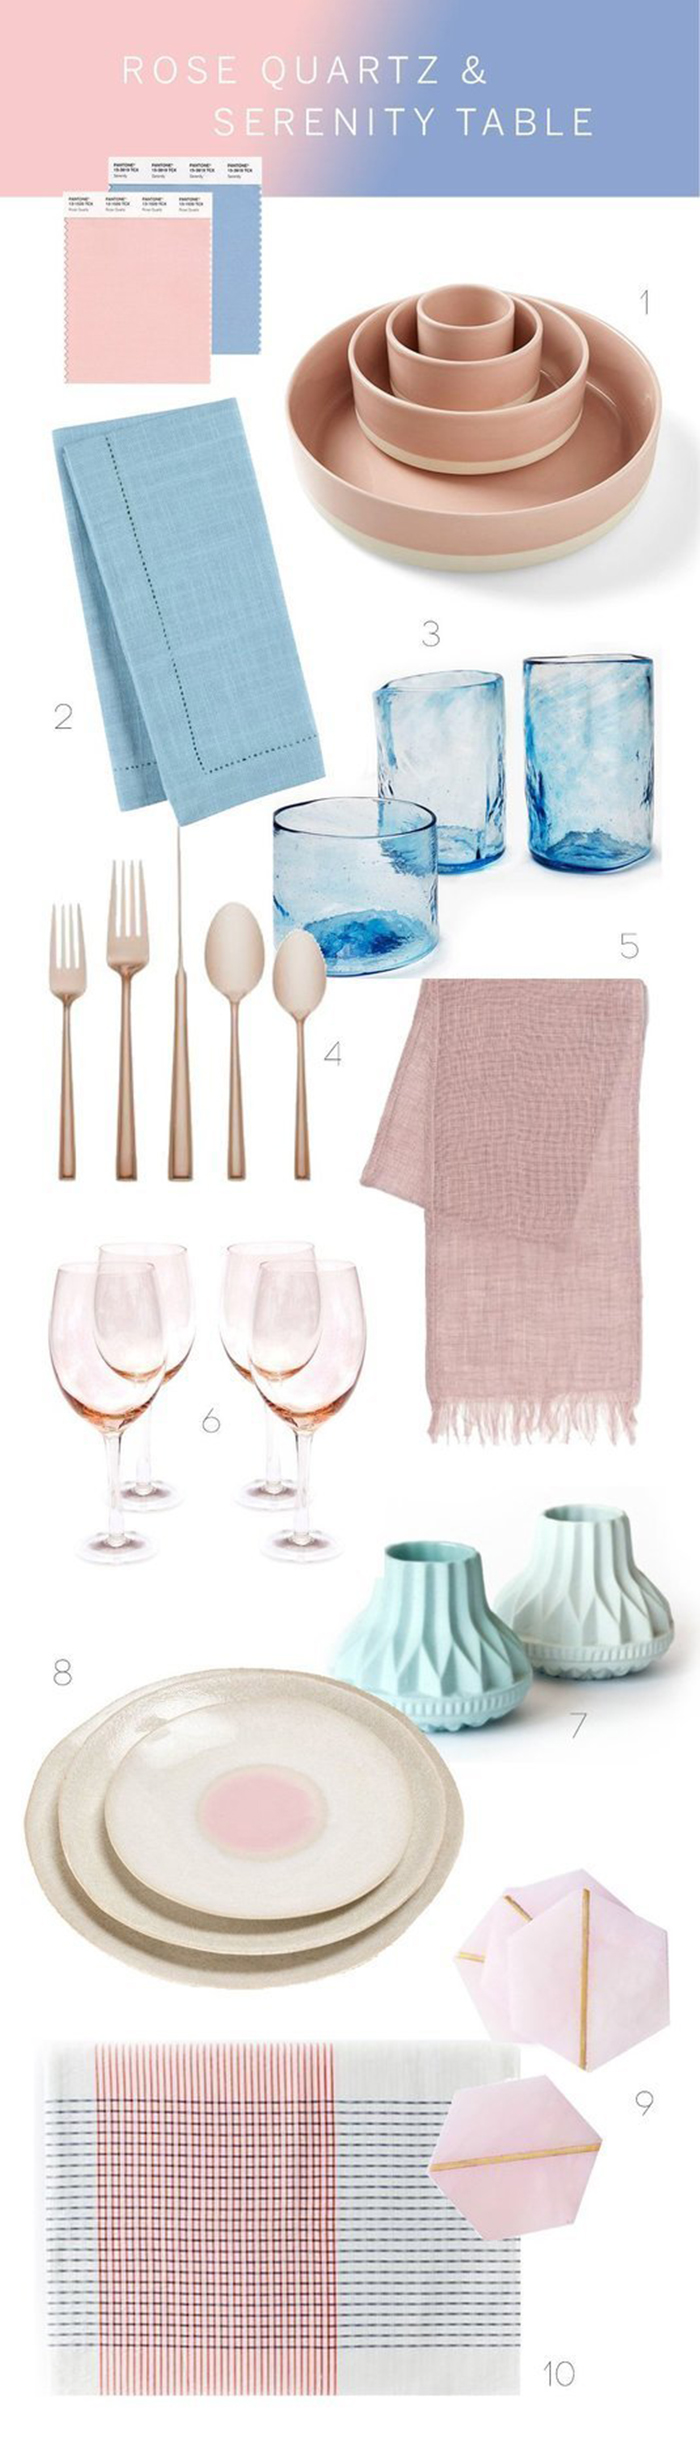 Table setting in pantone rose quartz serentity color of the year